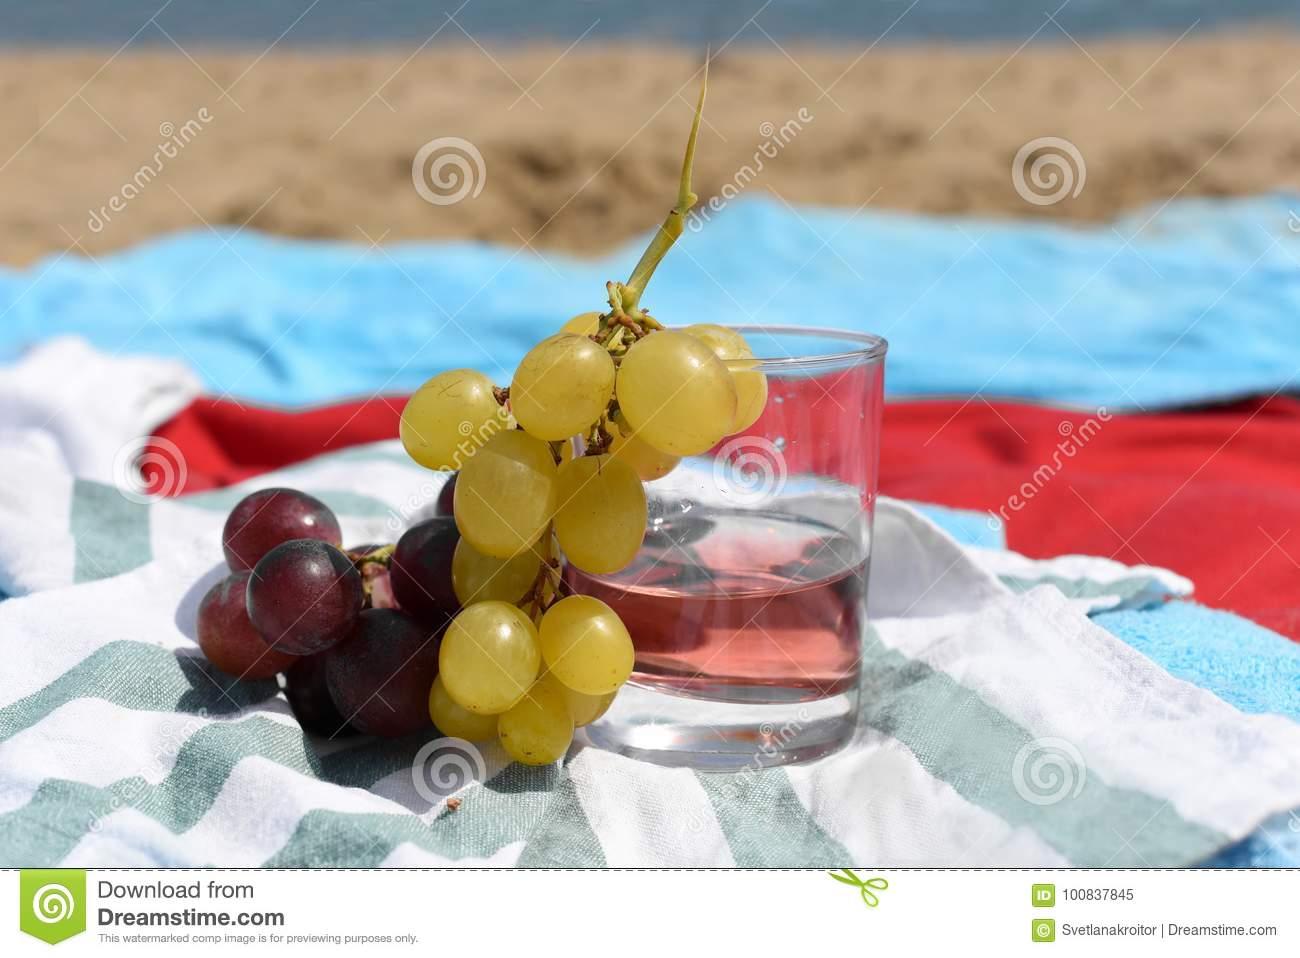 A sunny photo with a glass of wine and grapes against a background of a sand beach and sea